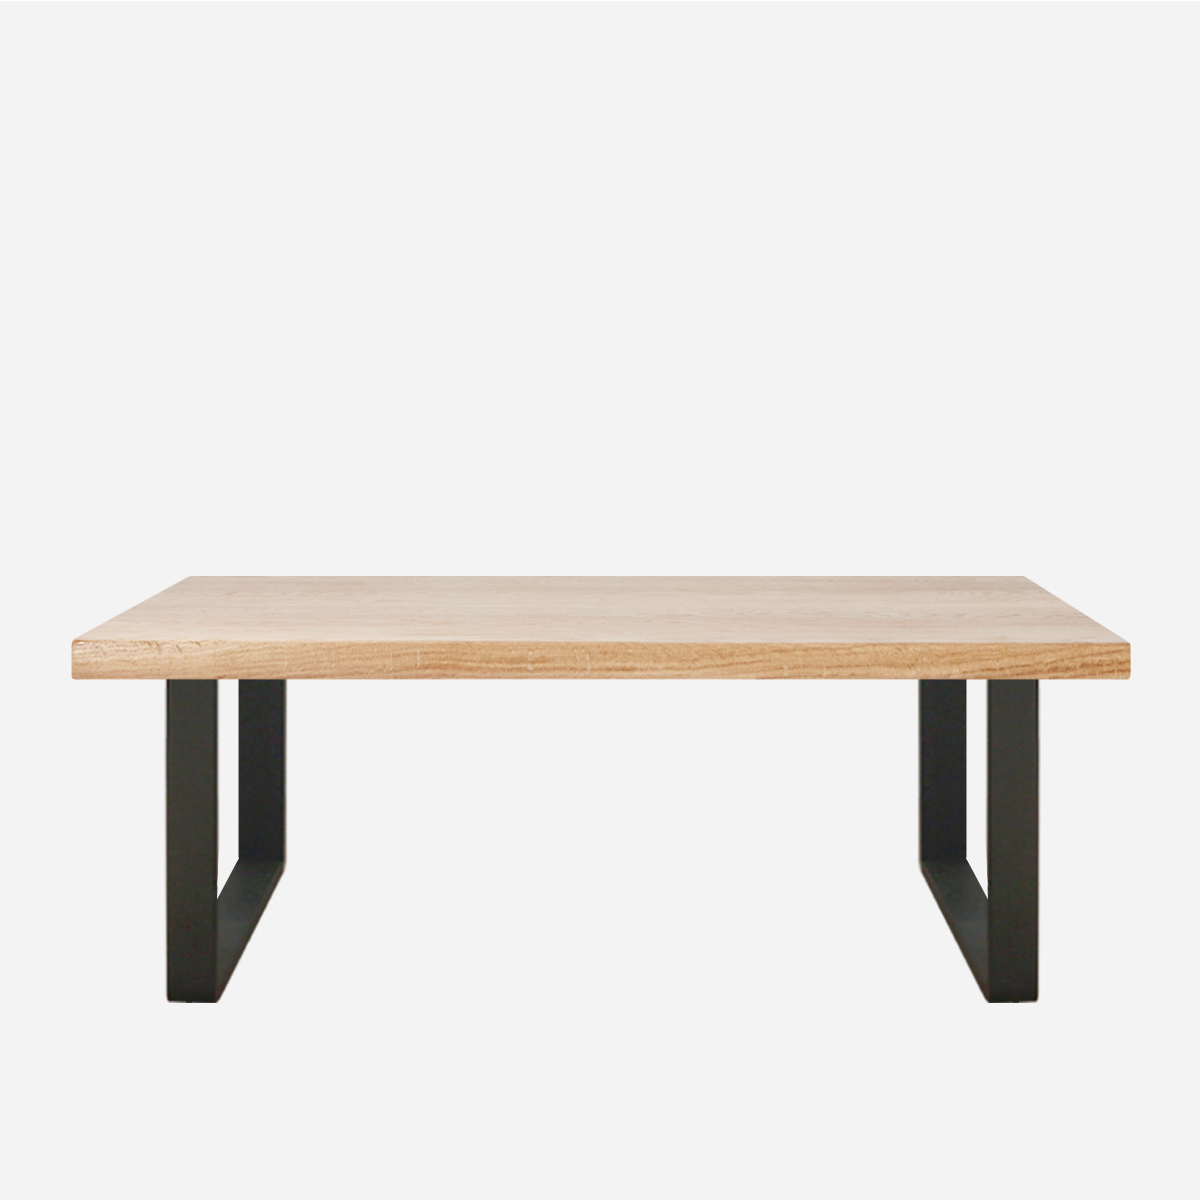 Oak Standard Metal Leg Bench